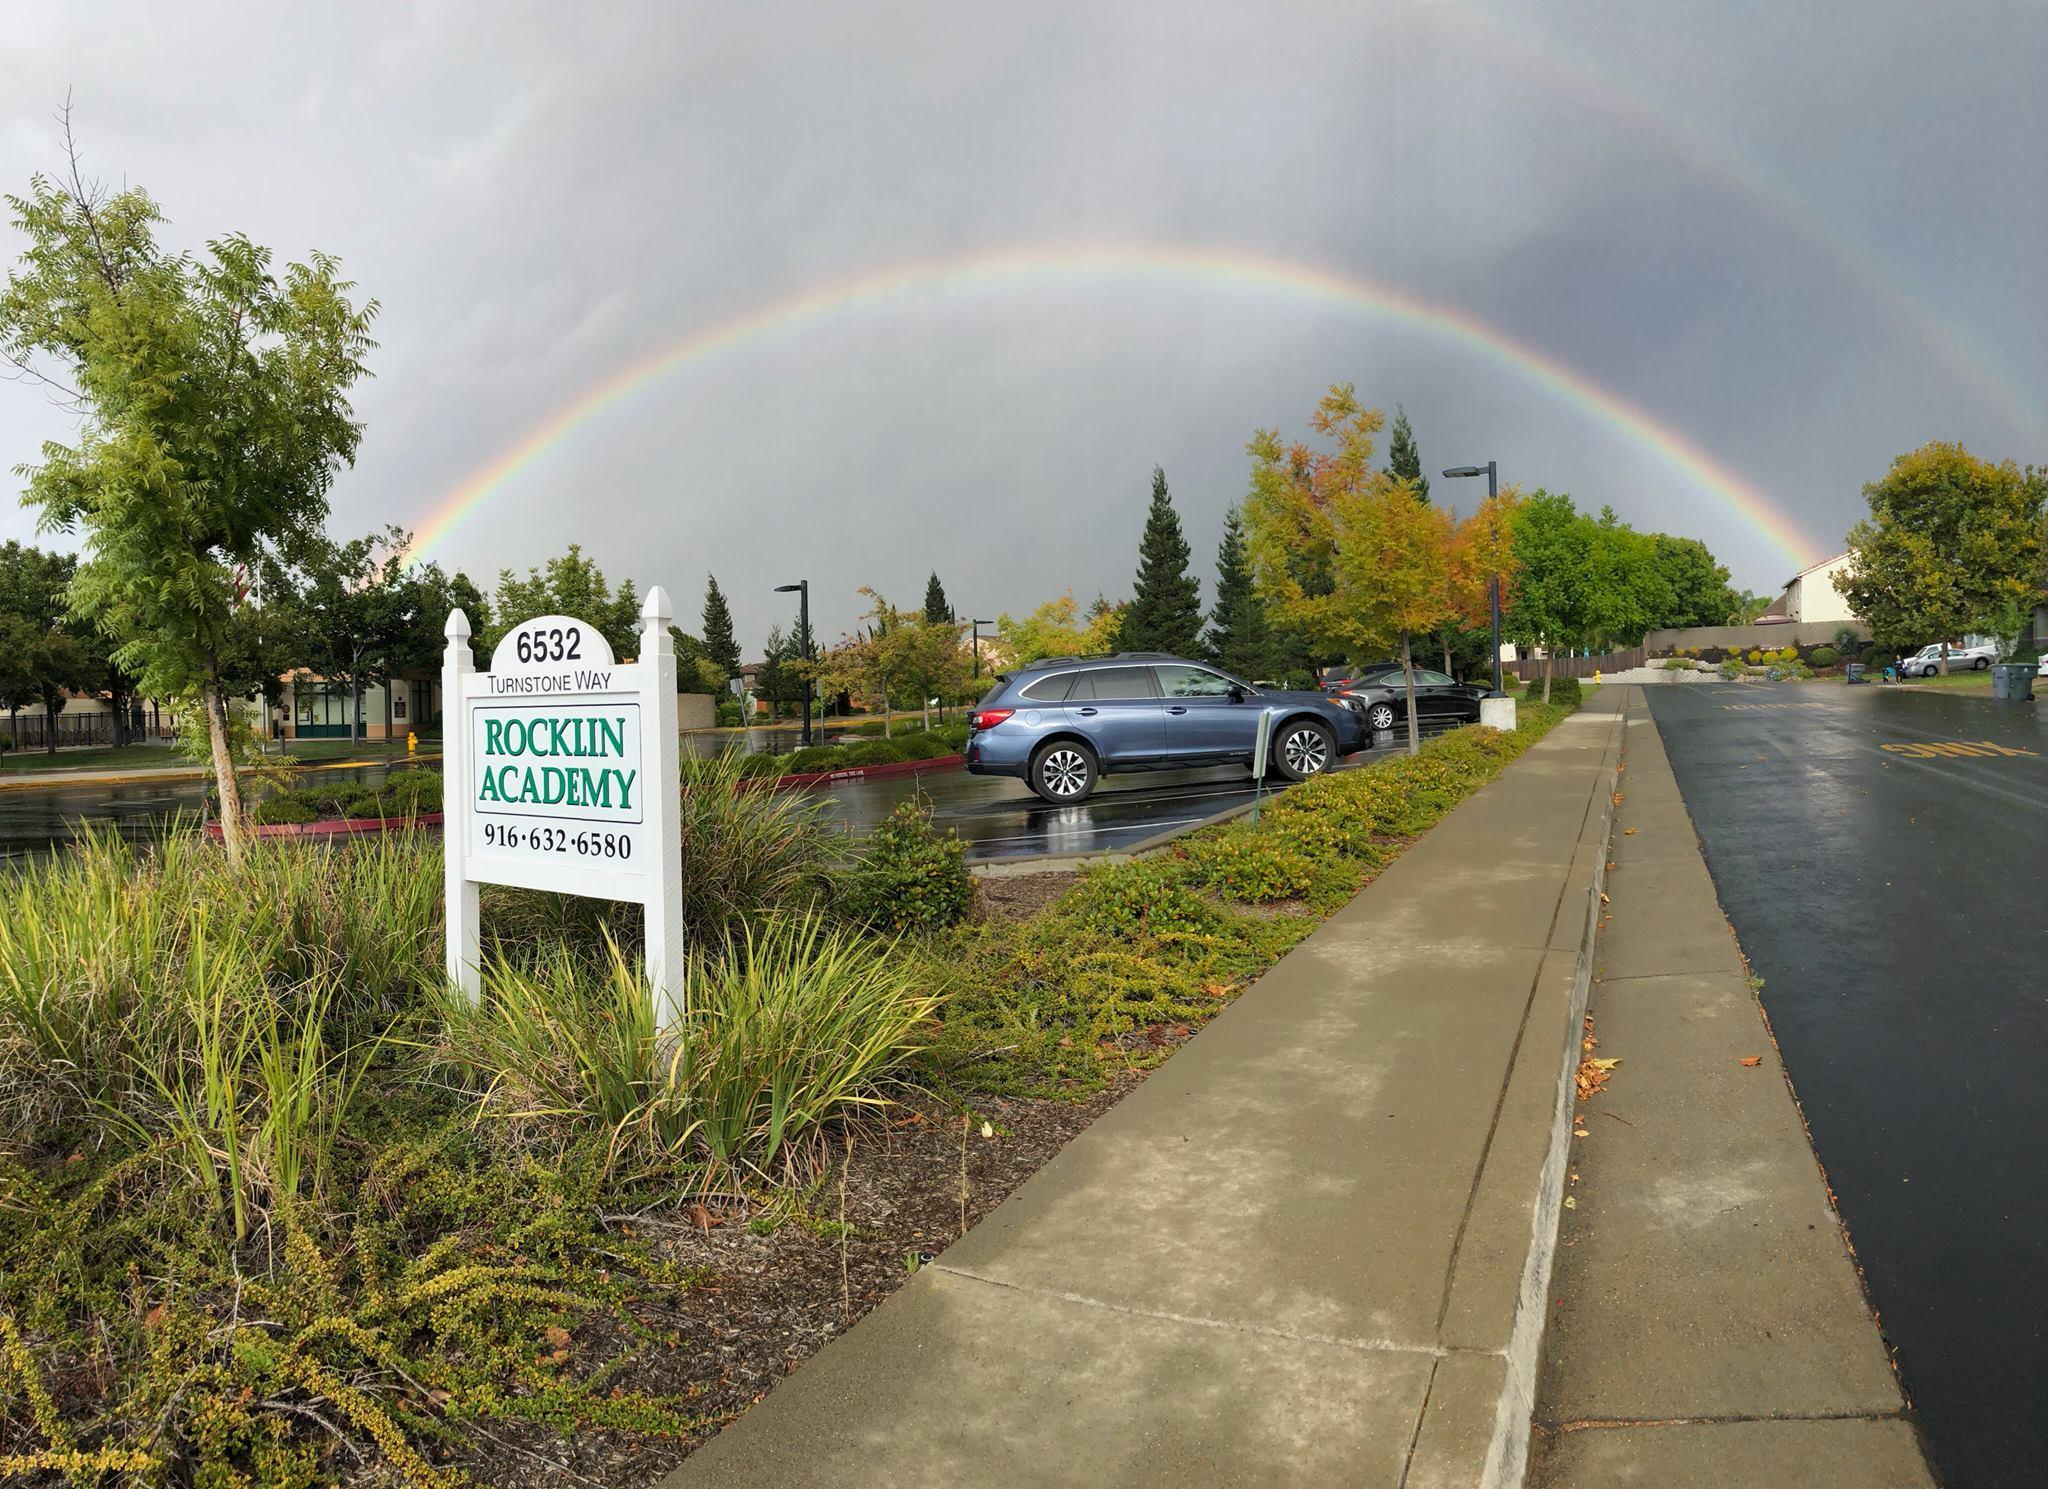 Rocklin Academy Turnstone sign with rainbow on a rainy day